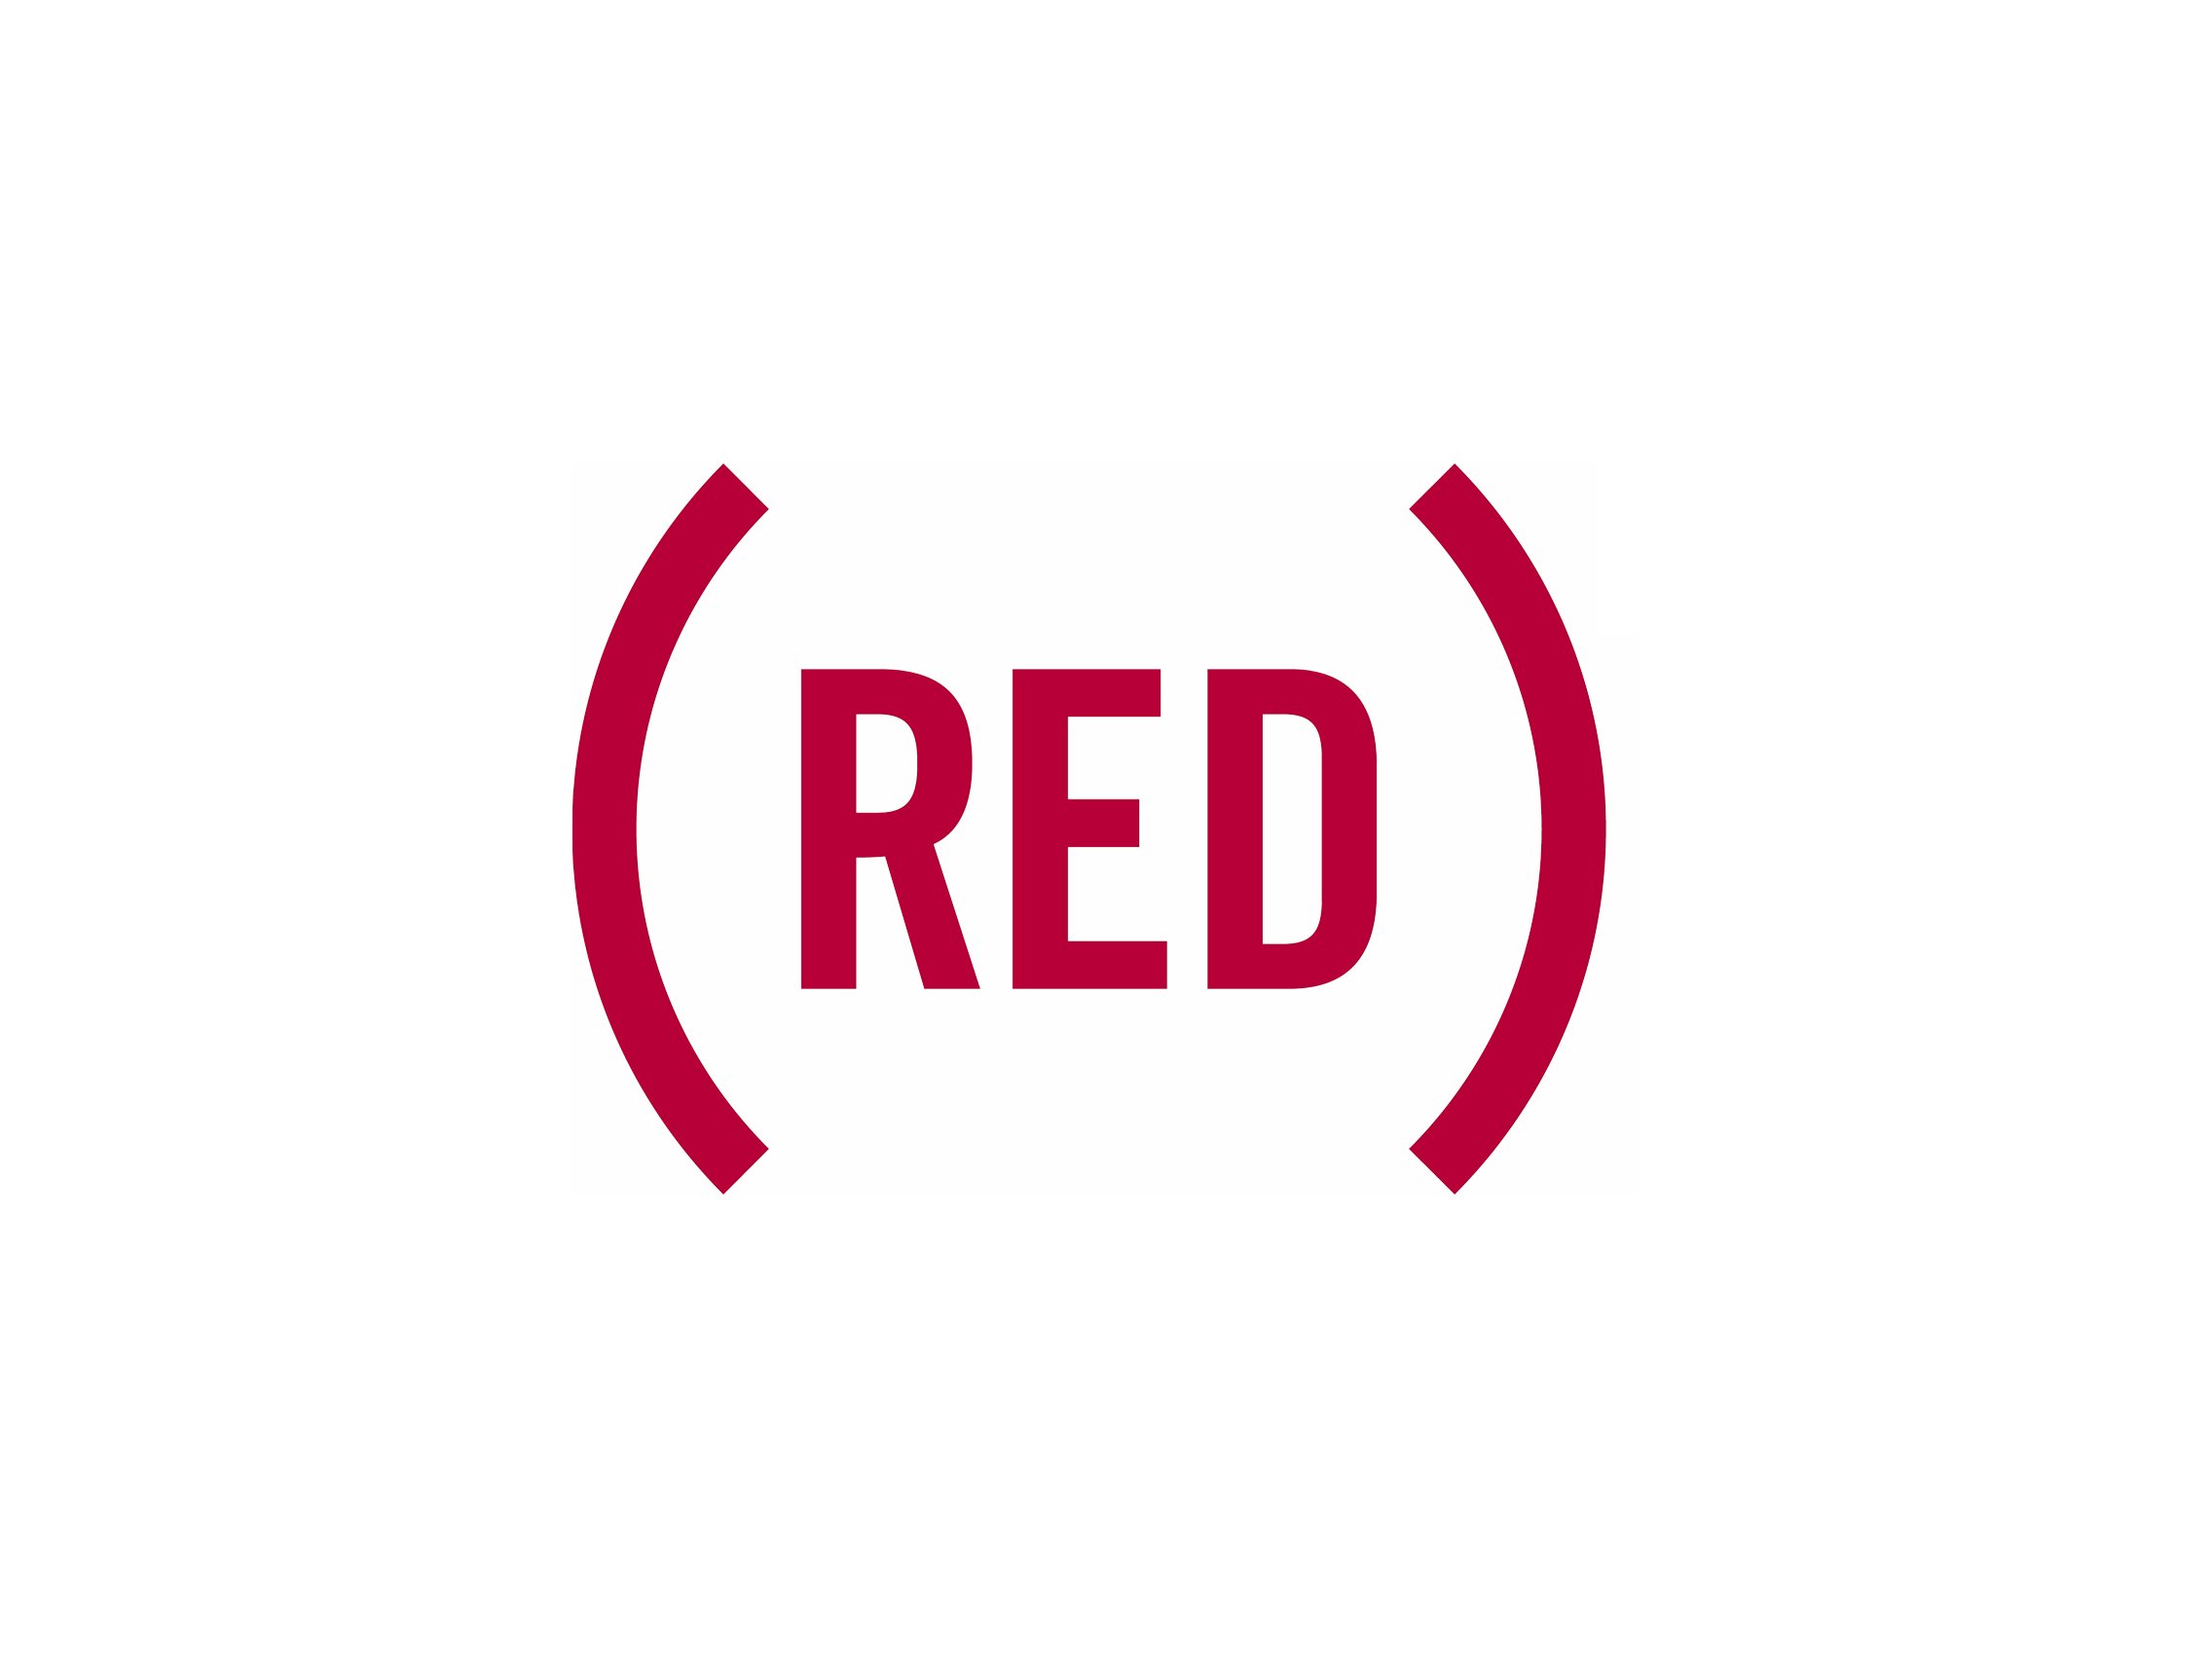 red logo logok